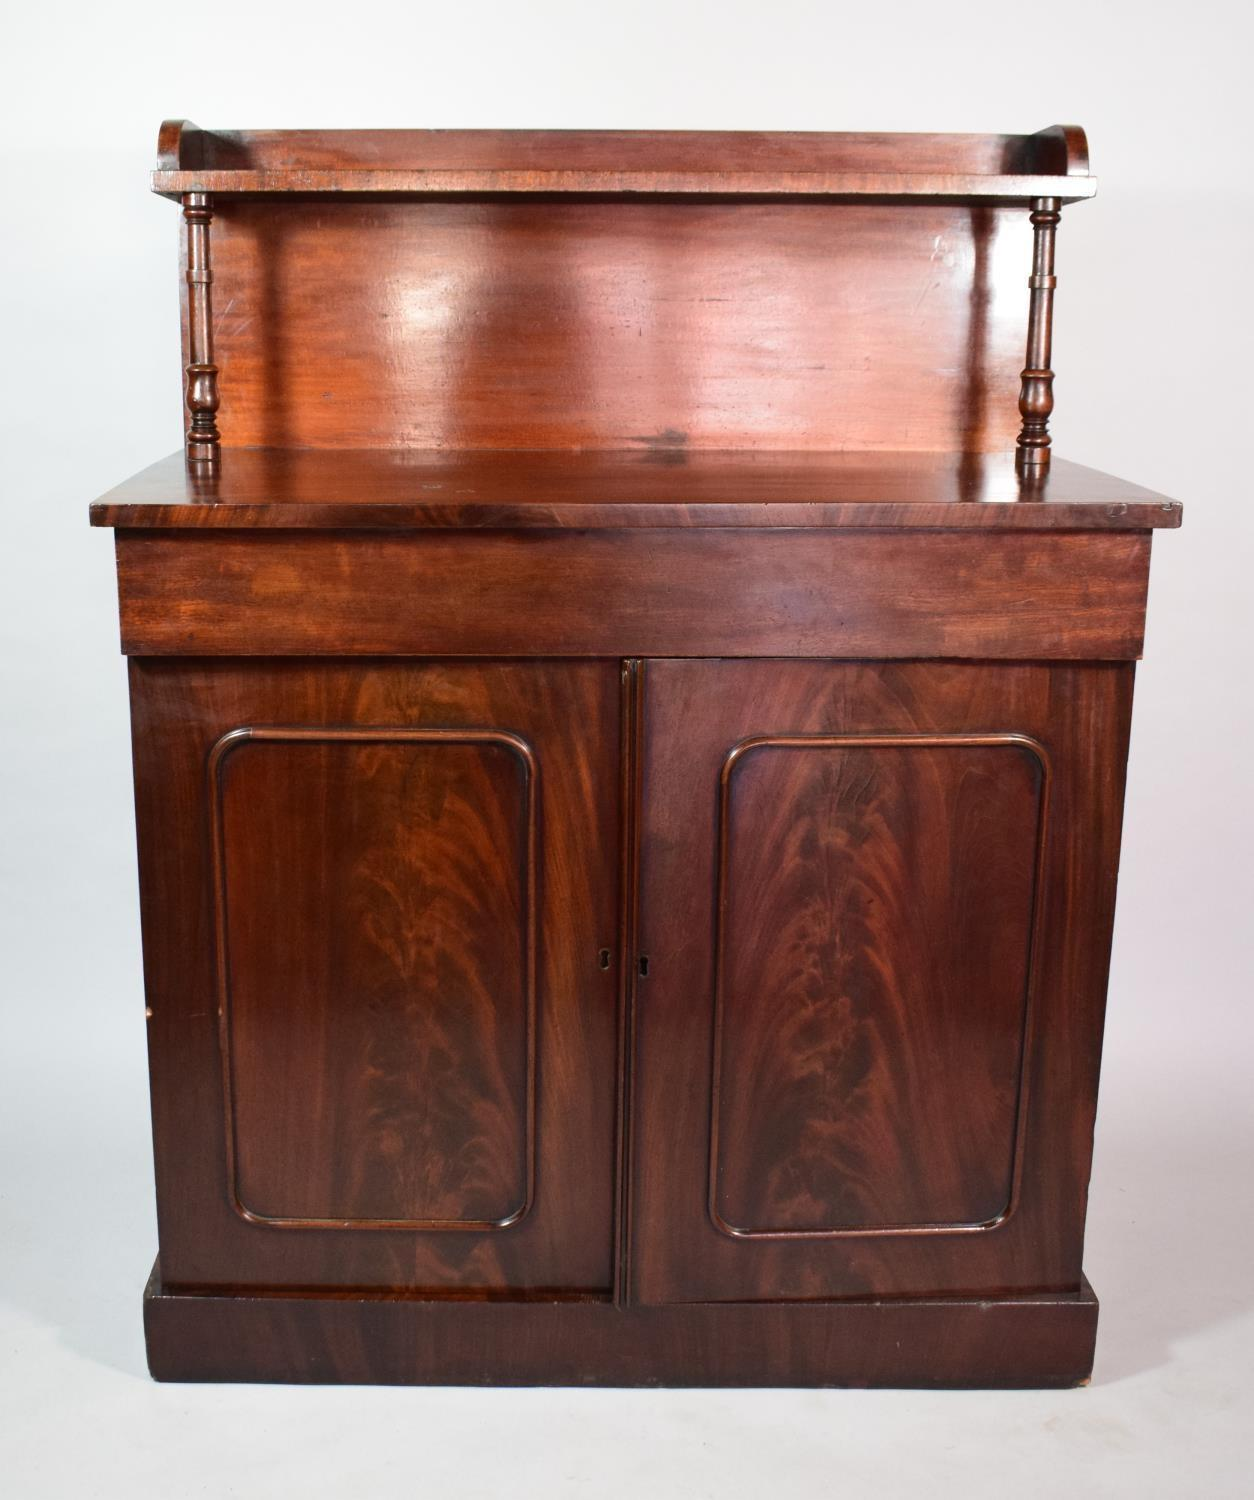 Lot 493 - A Victorian Mahogany Buffet having Galleried Back with Turned Spindle Supports and Single Shelved